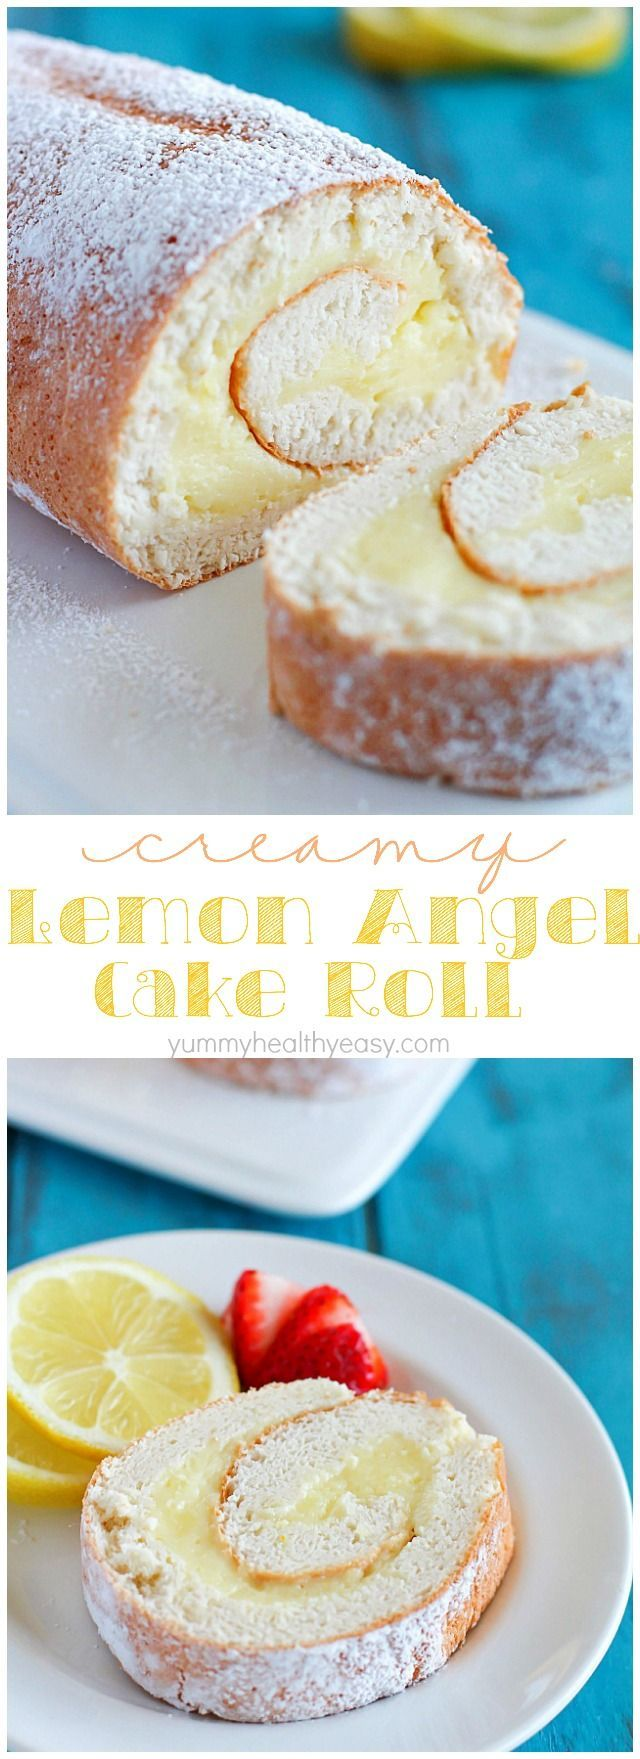 A light angel cake roll filled with a creamy lemon filling. It makes an impressive (lighter) dessert and uses NO butter or oil!